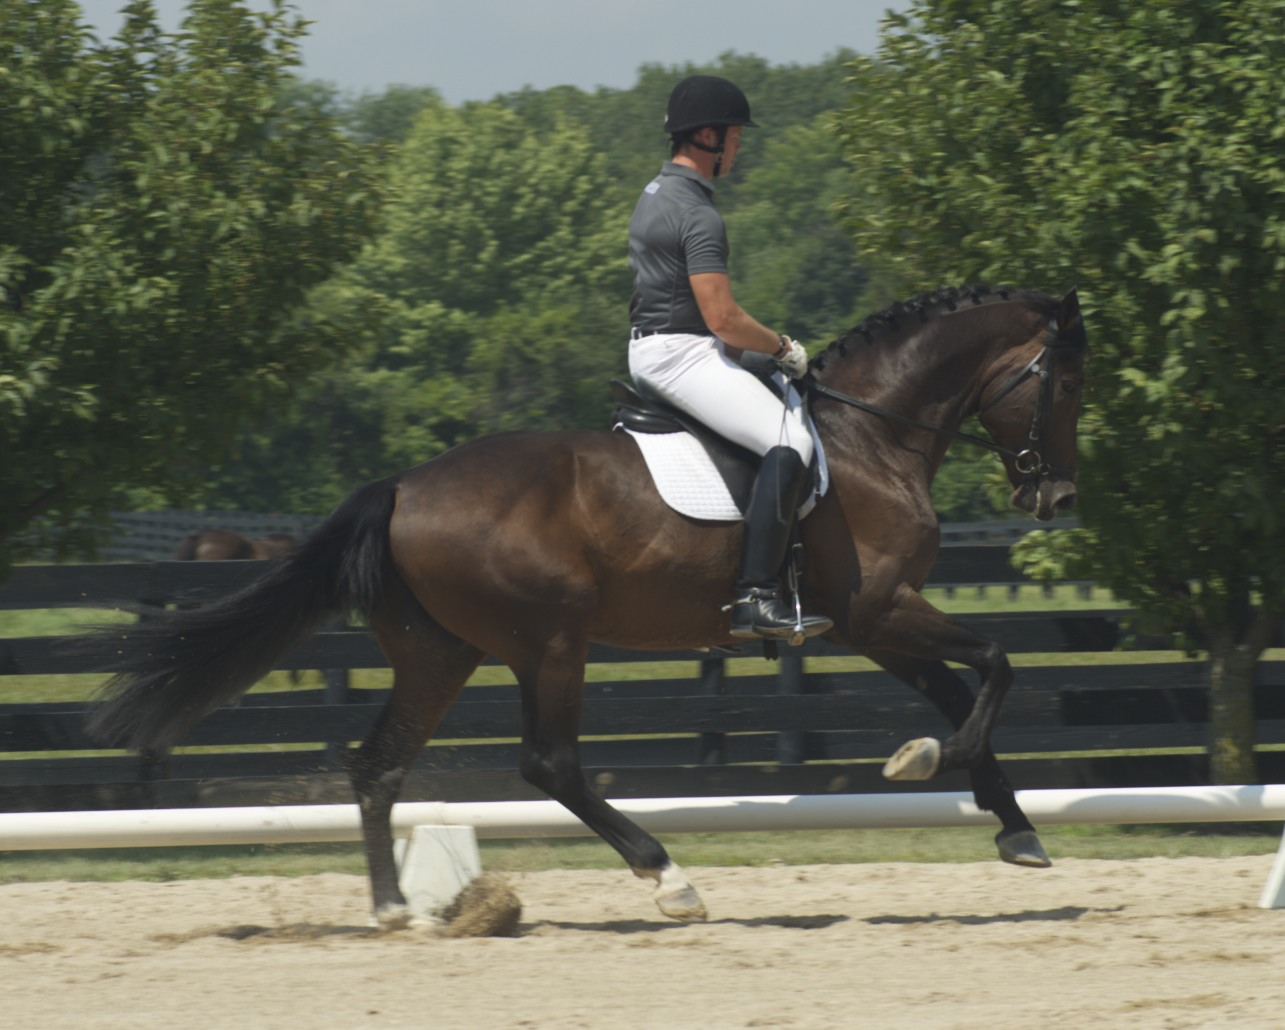 Raisin Money, owned by Bart Collida & Michelle Inman,andMartin Kuhn won the Training Level & First Level high points.